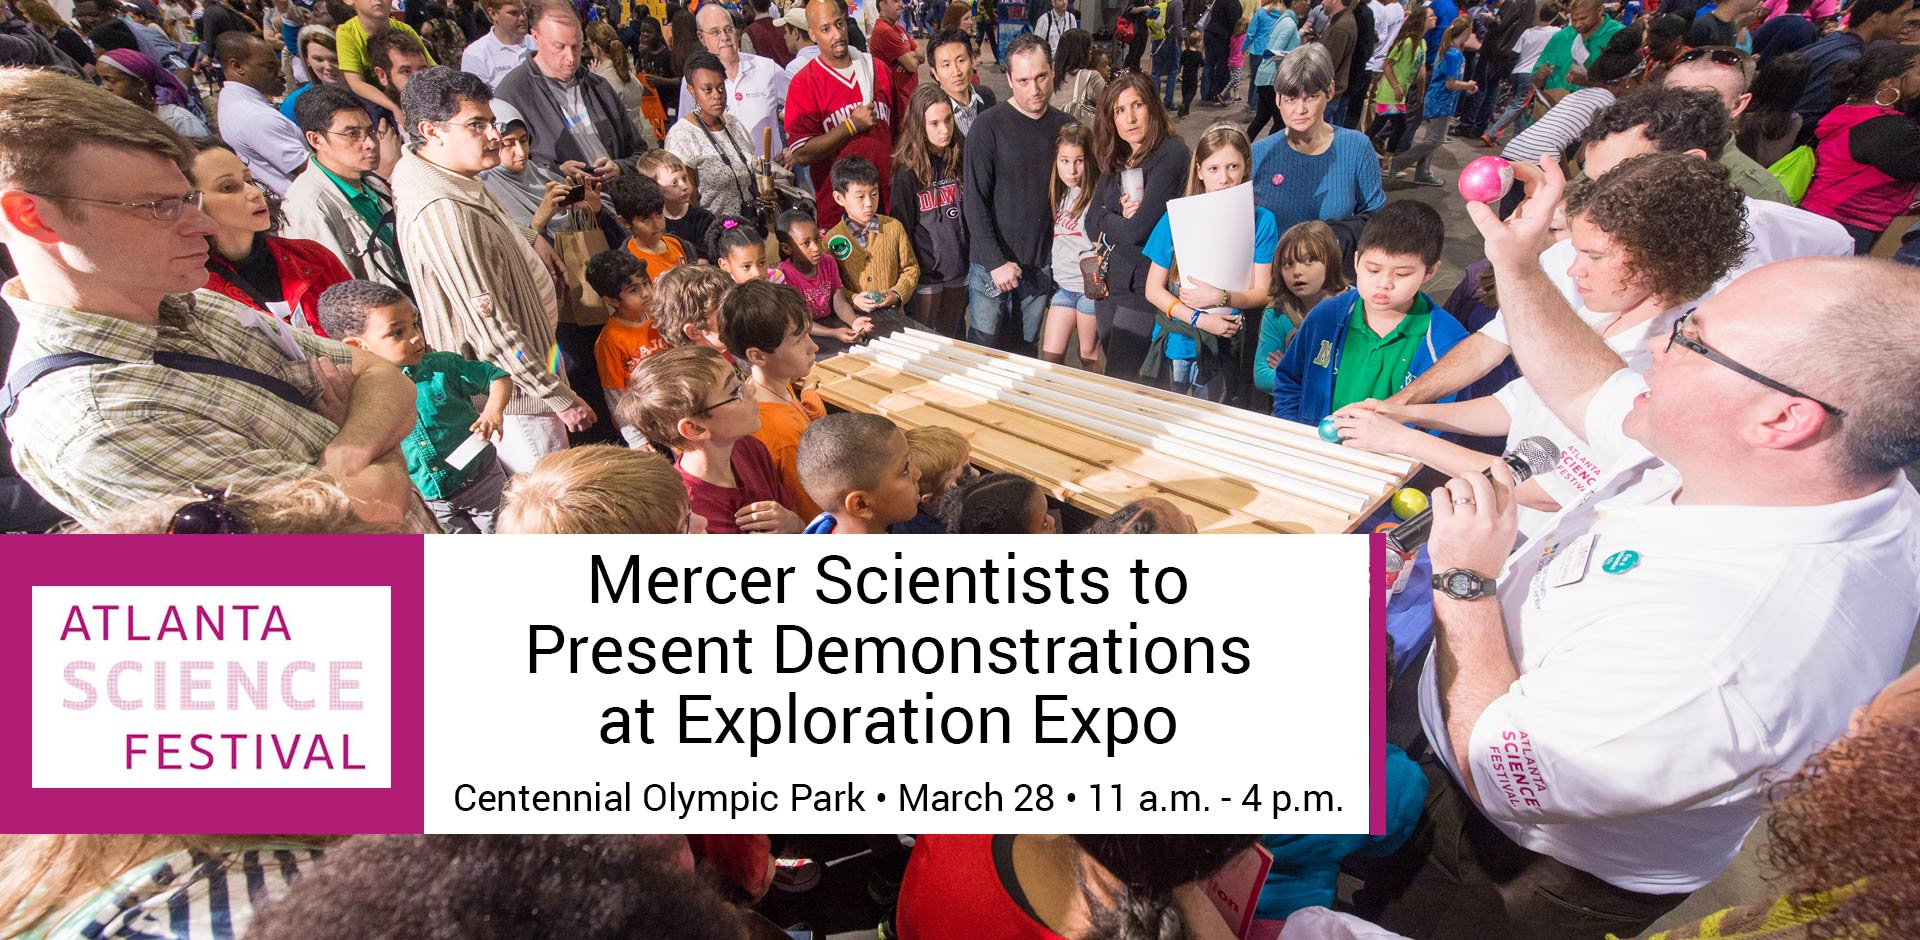 Mercer Scientists to Present Demonstrations at Exploration Expo